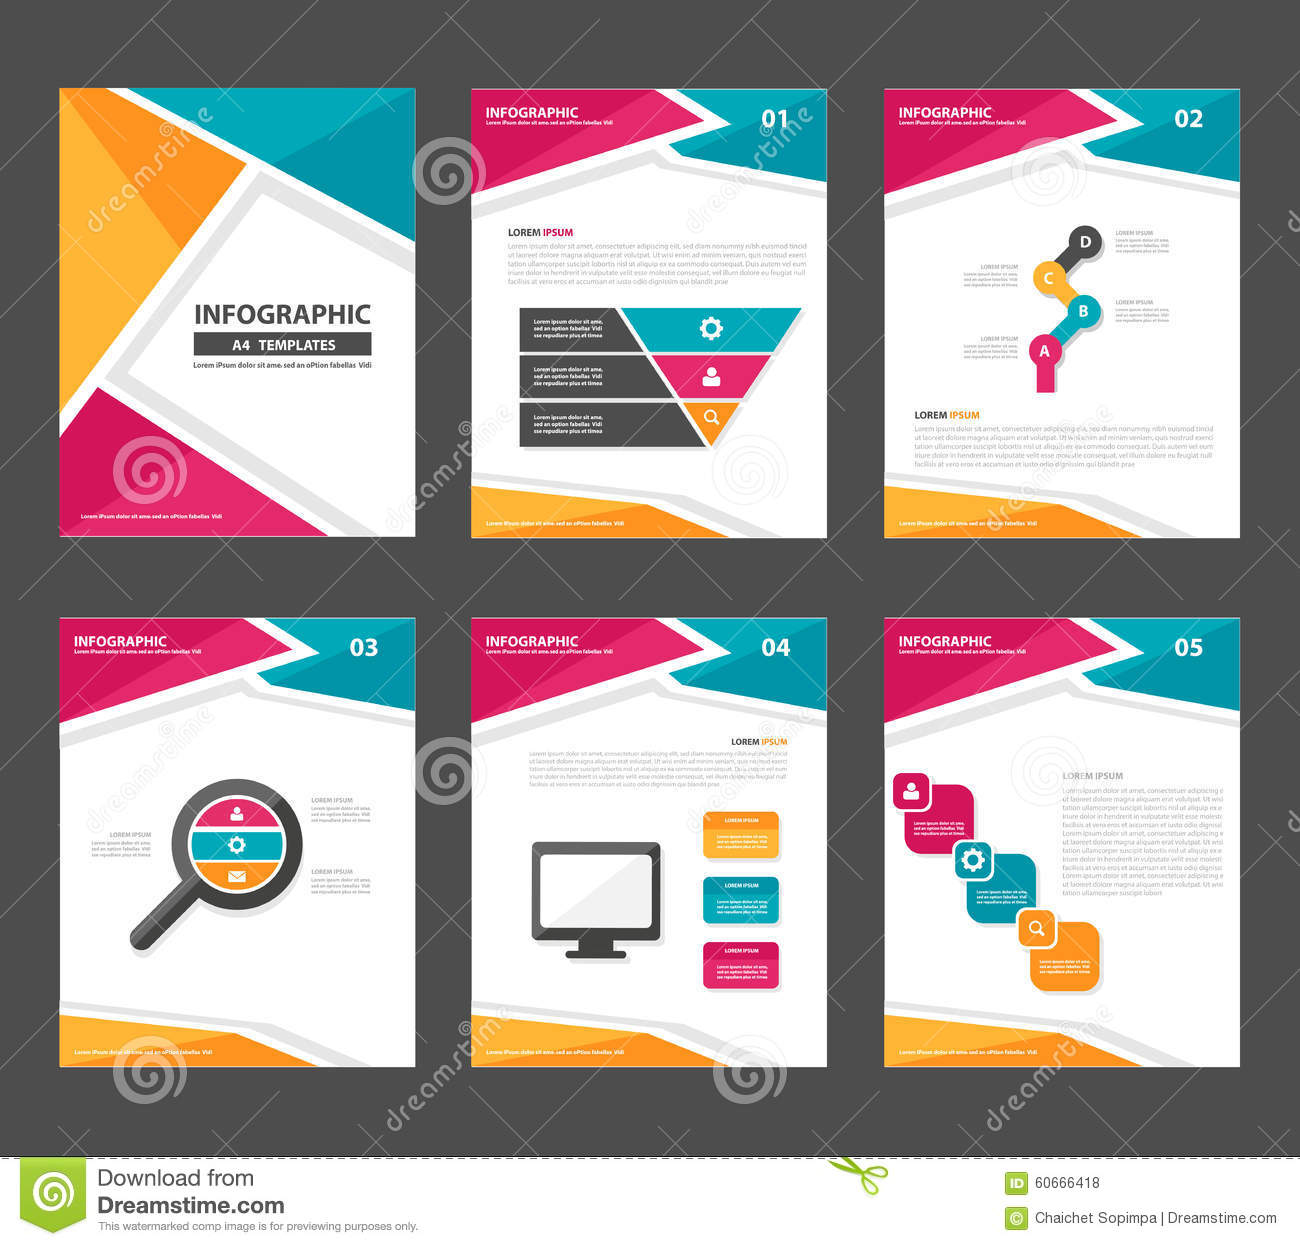 pink yellow green infographic elements presentation template flat